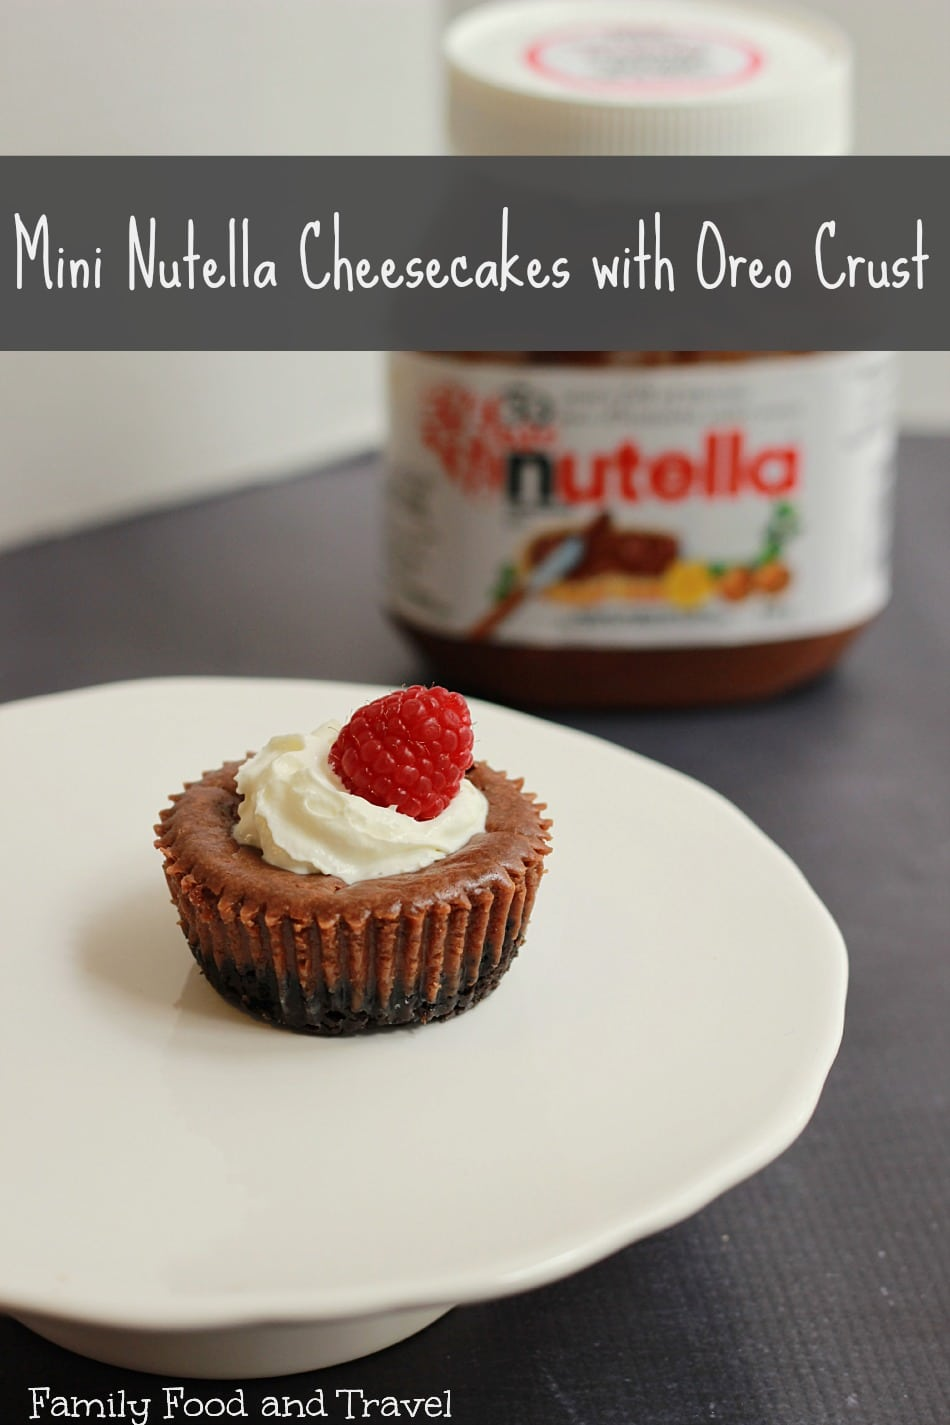 mini nutella cheesecakes with oreo crust